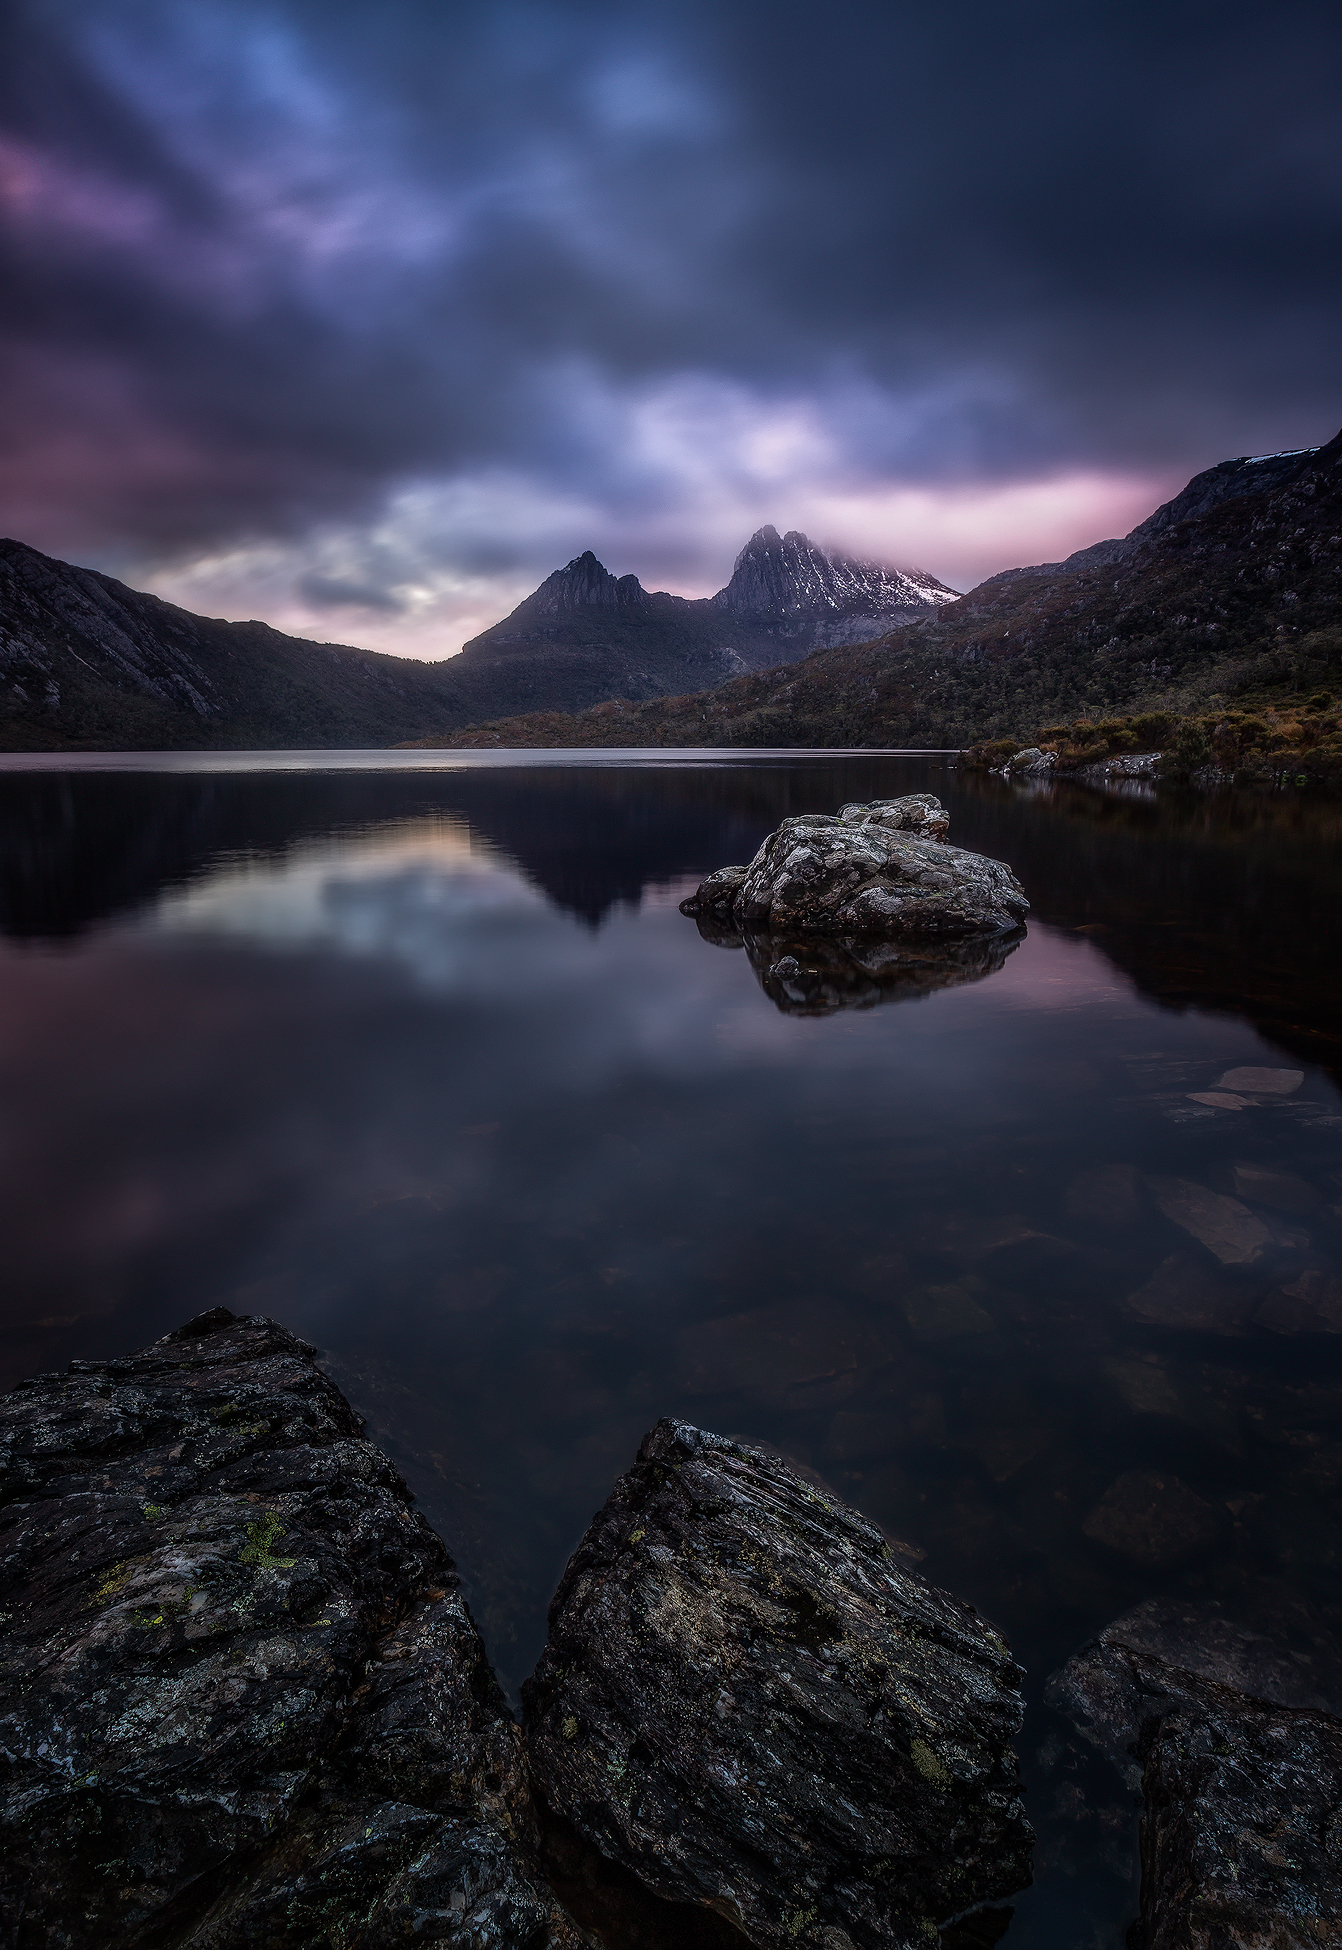 Tasmania Landscape Photography Tour - Cradle Mountain Untouched and Pure | Holiday with We Are Raw Photography Tours